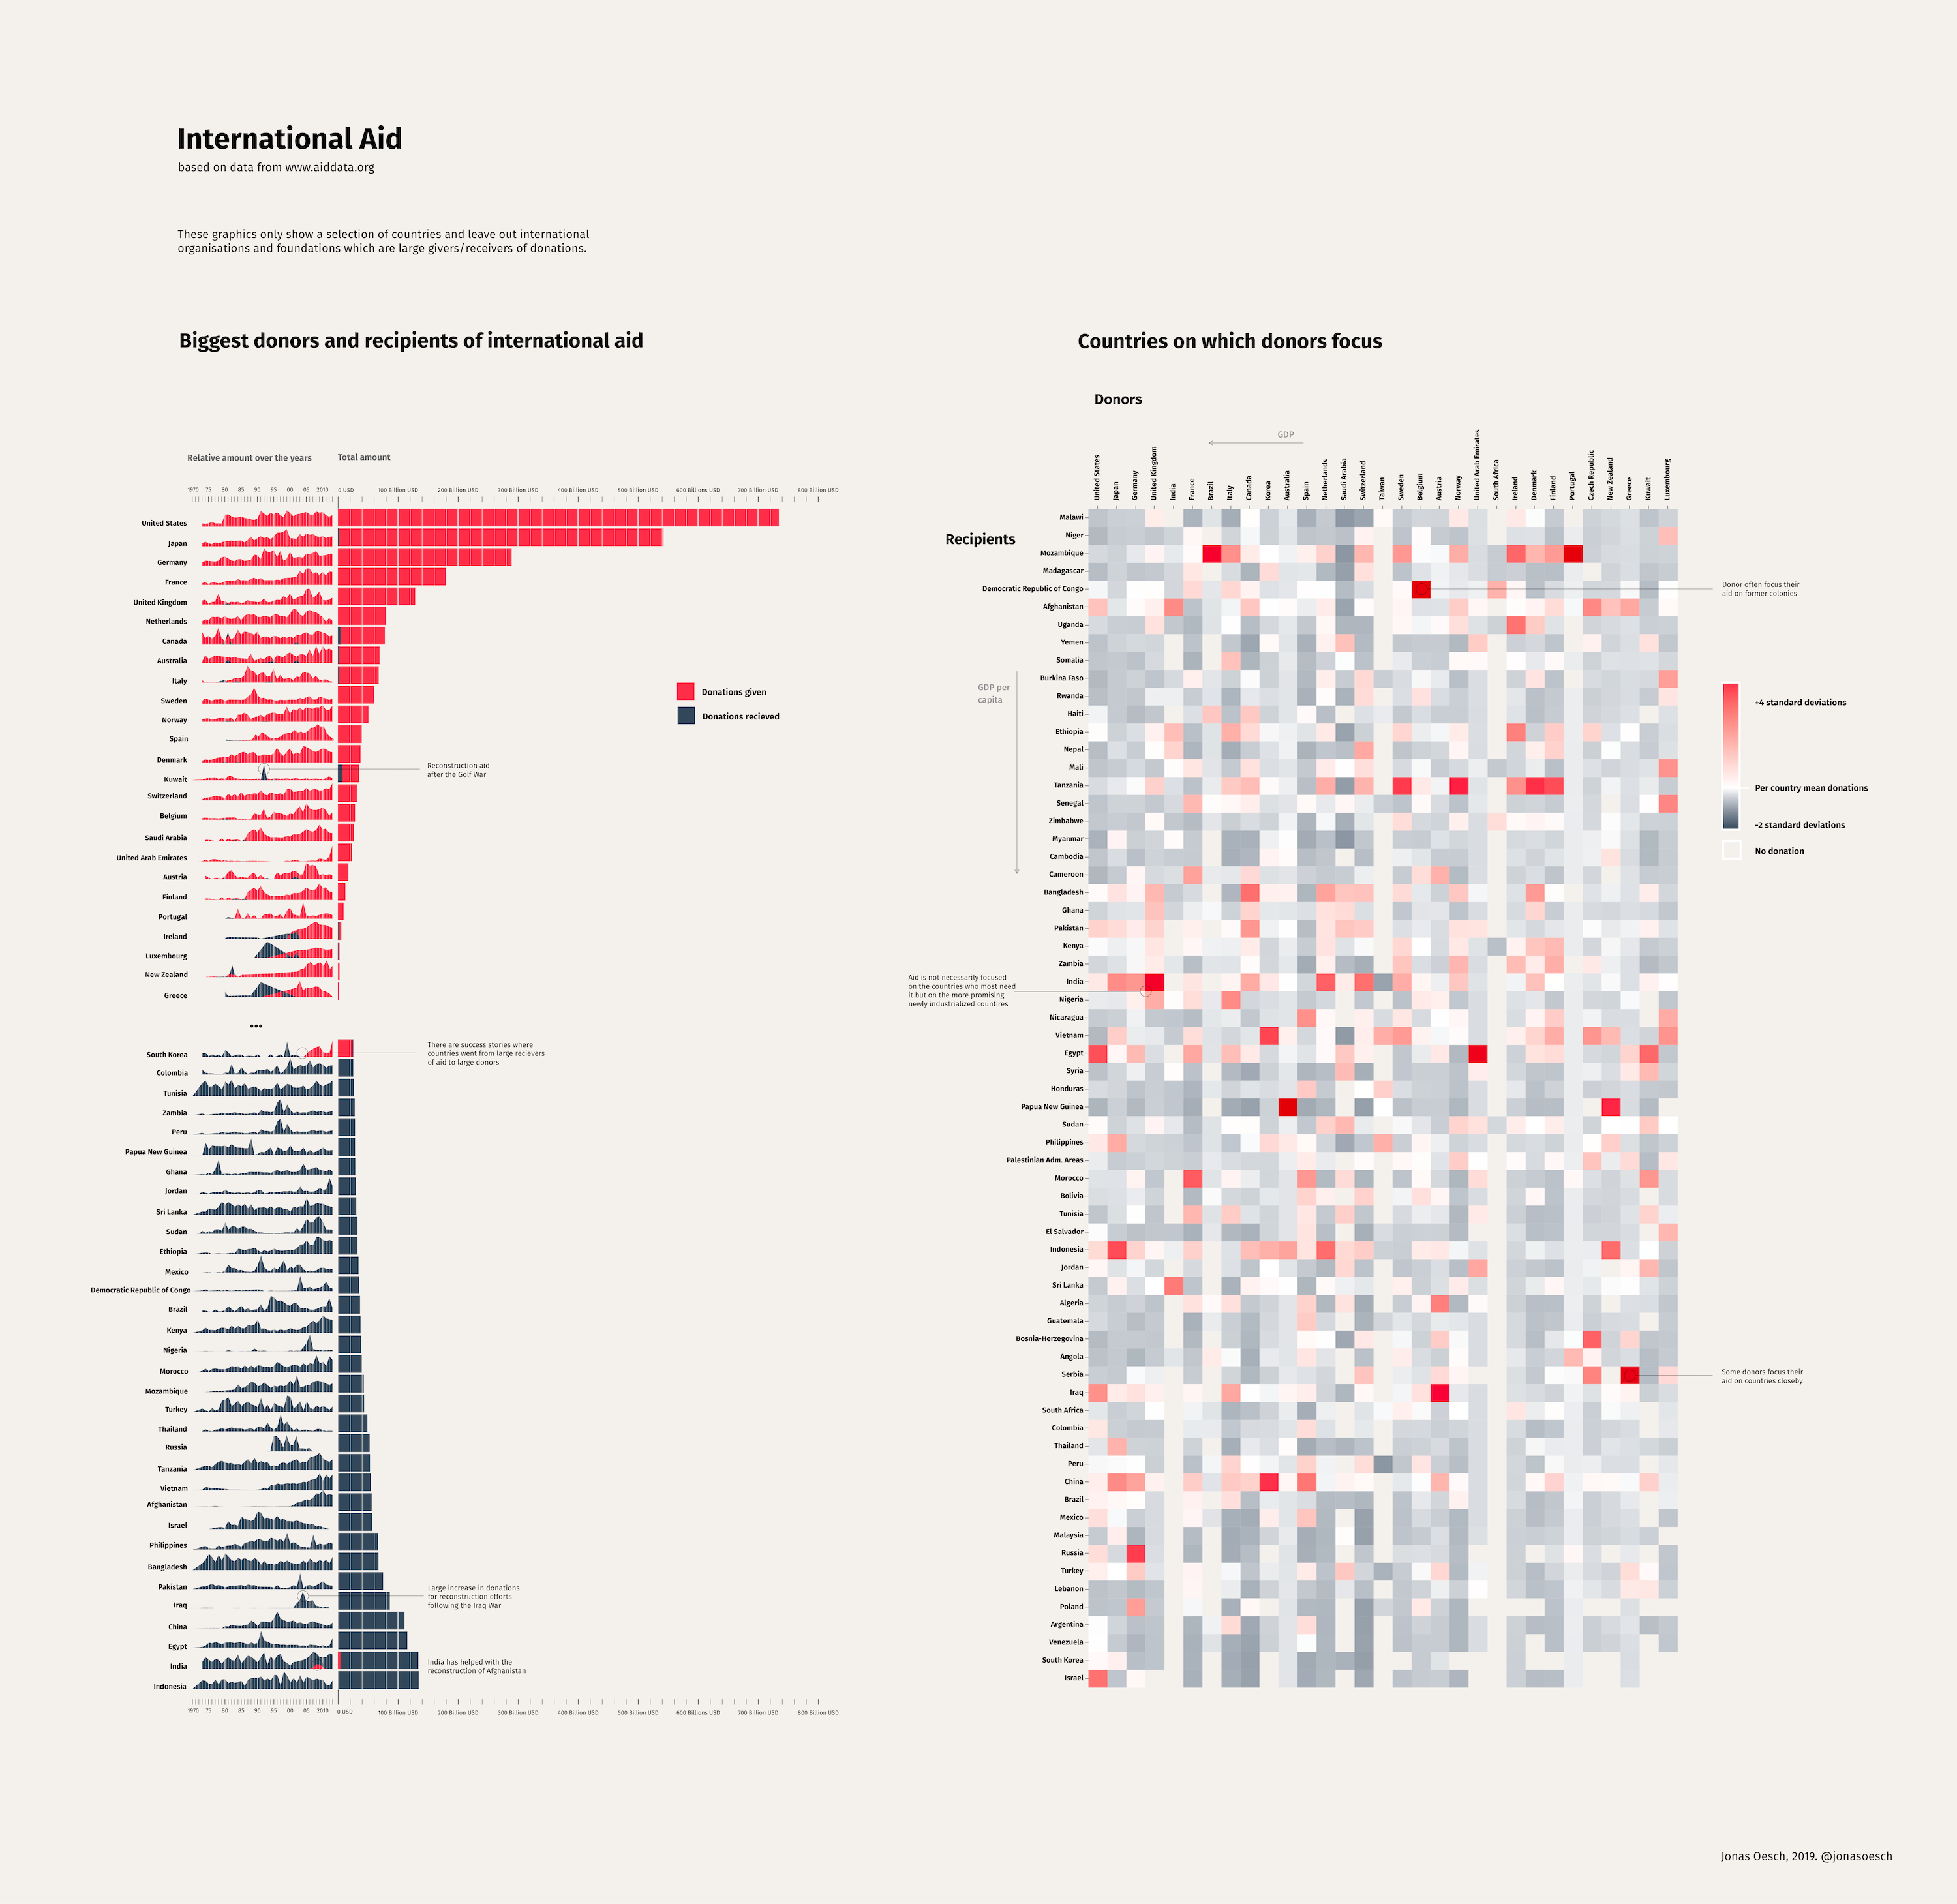 An explorative data visualization showing patterns in the flow of international aid money